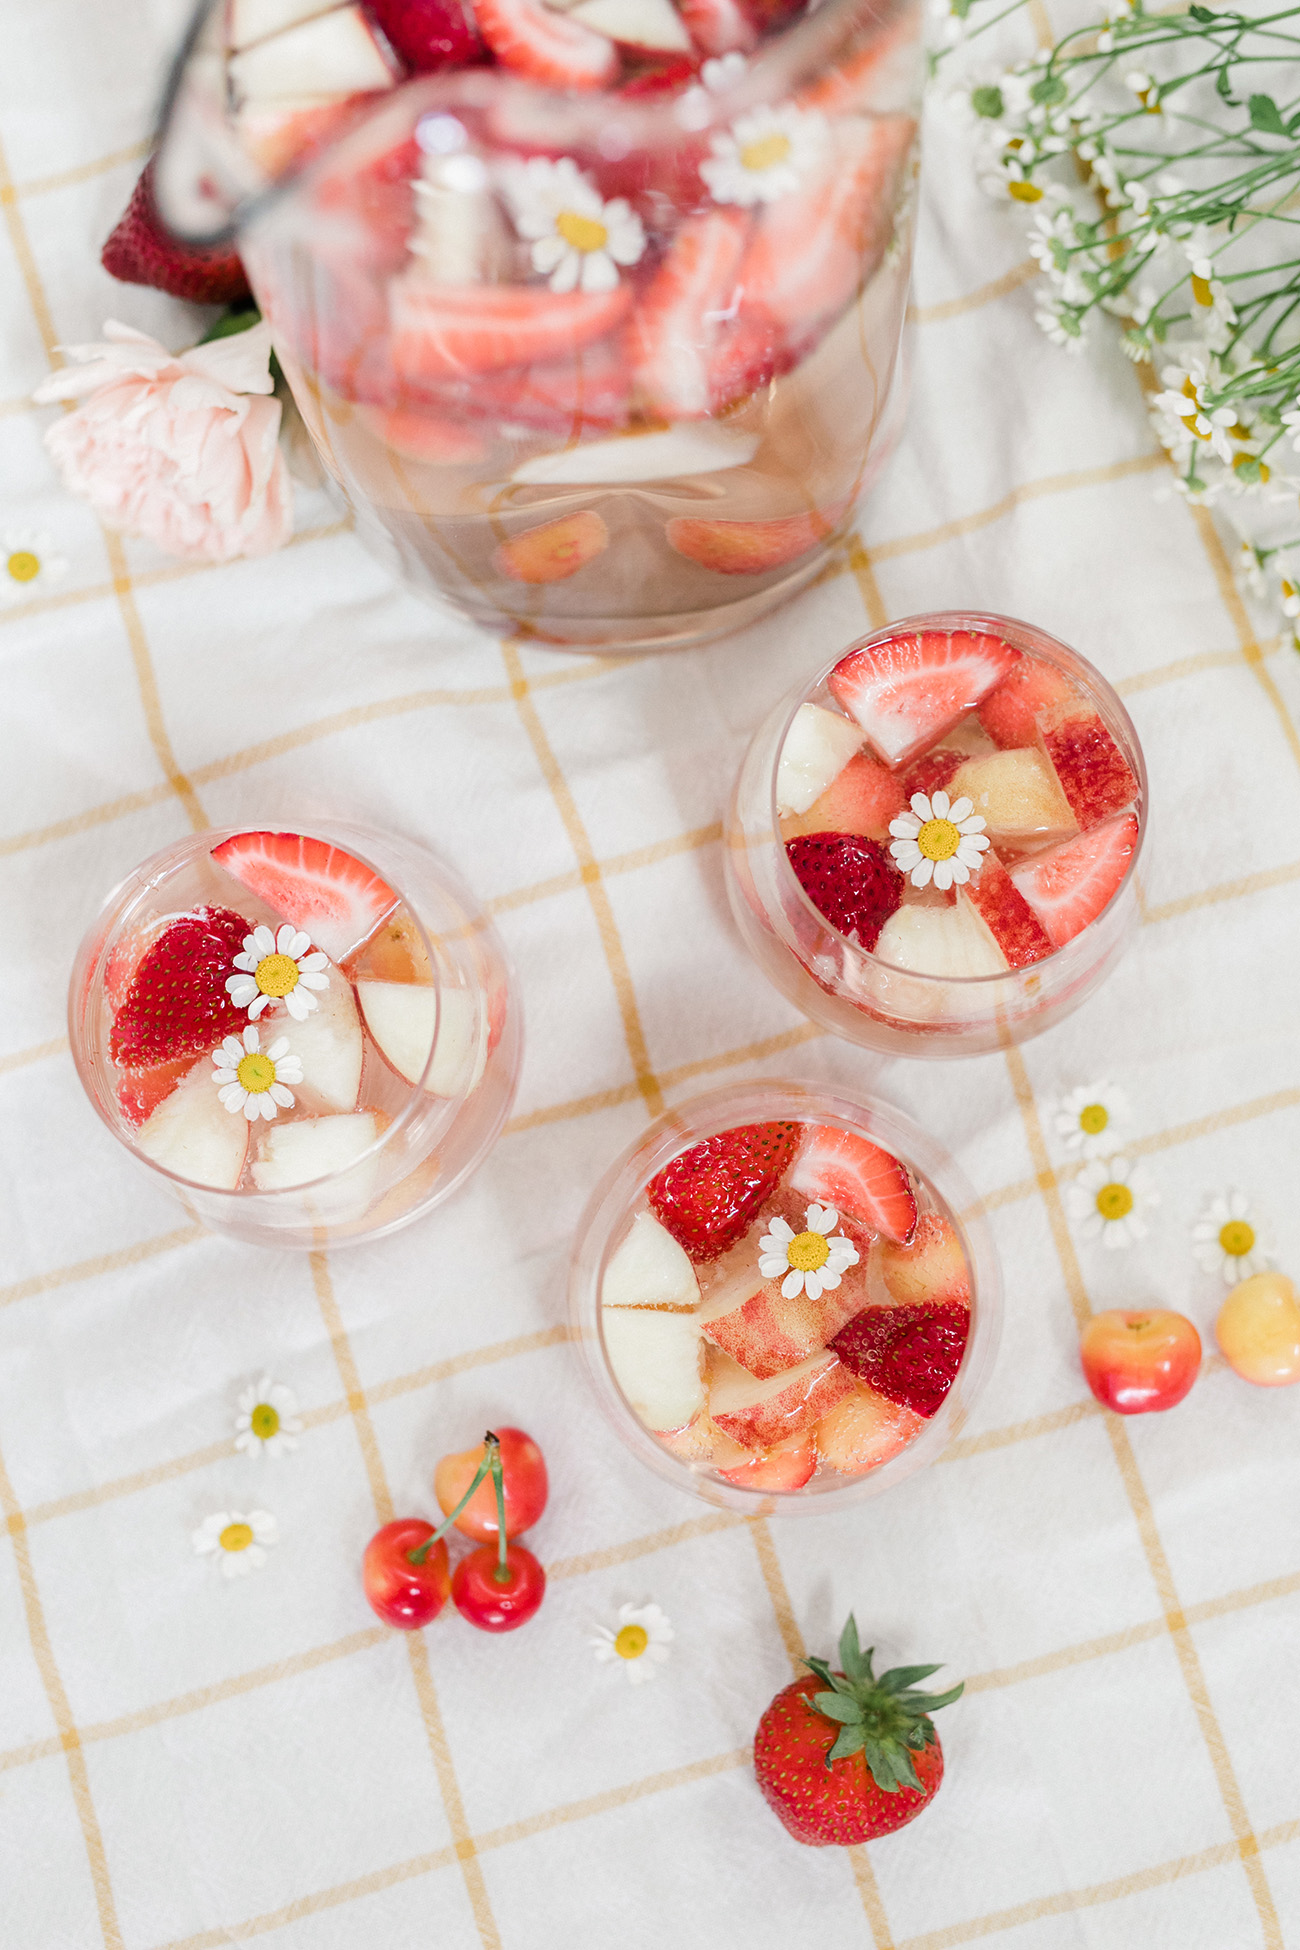 Rosé Sangria with Cherries and Strawberries